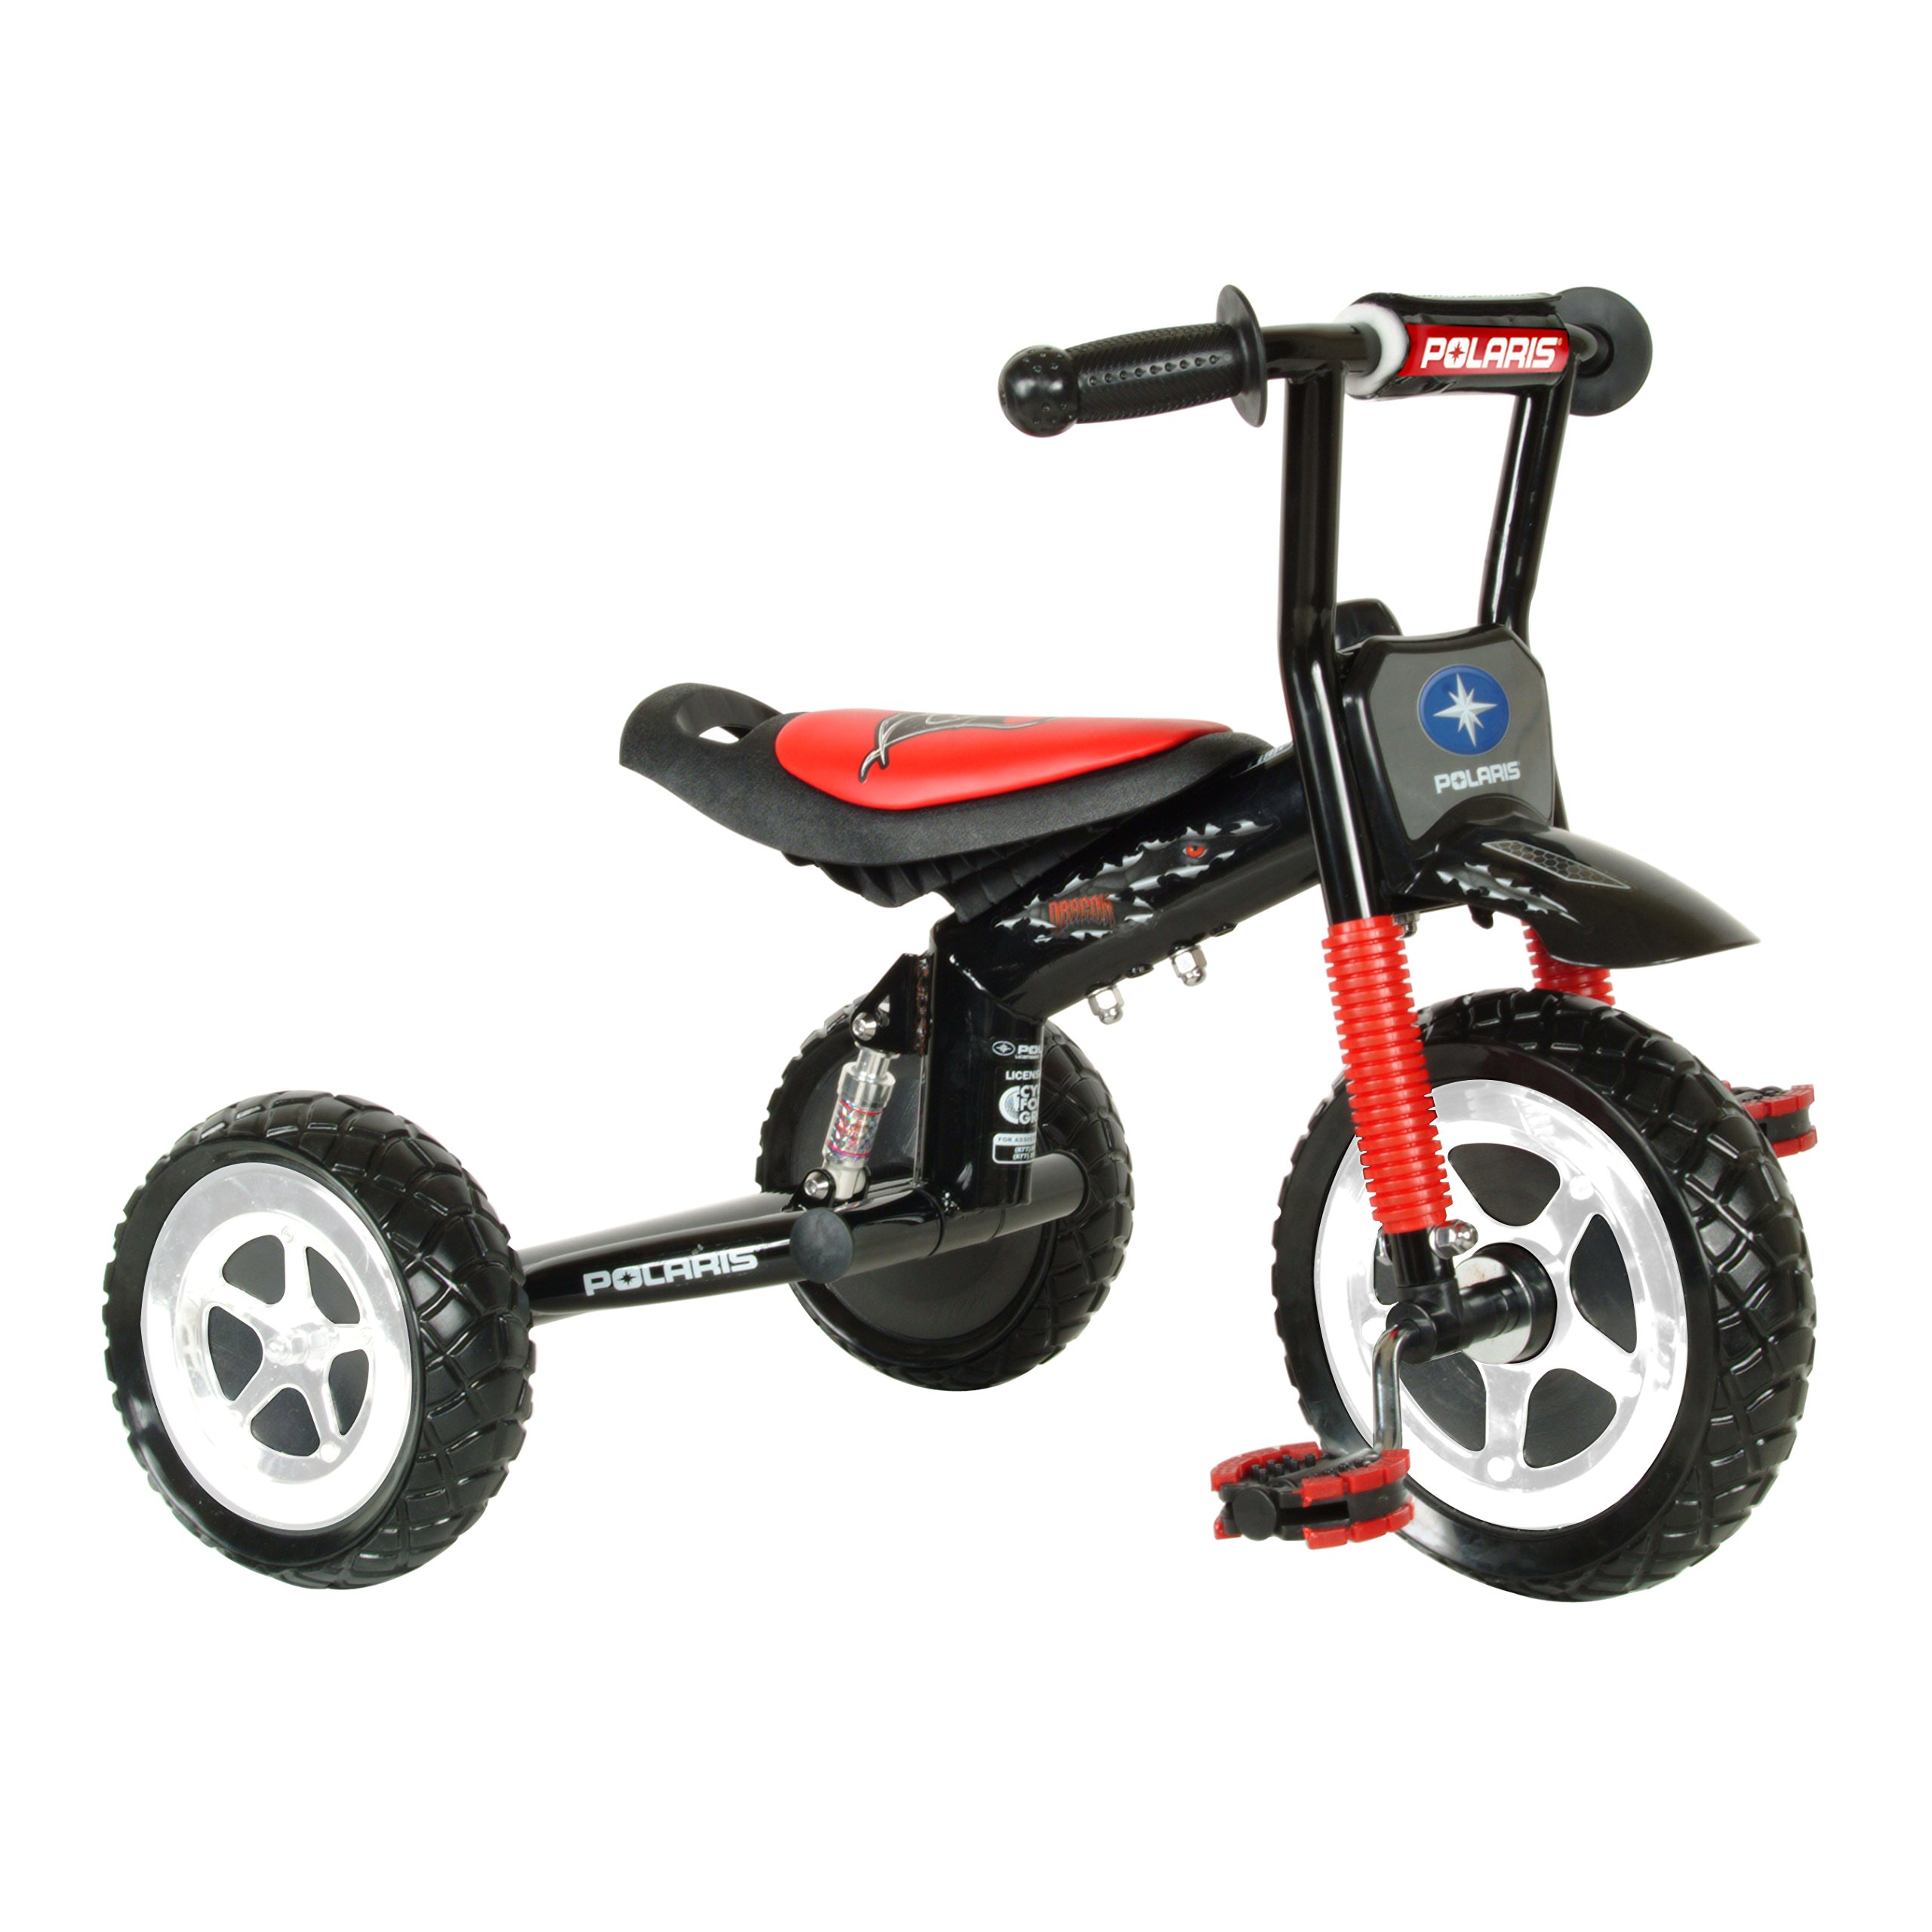 Polaris Dragon Tricycle with Steel Frame and Suspension Fork, 10 inch Wheels, for Boys and Girls, Red/Black by Polaris (Image #2)